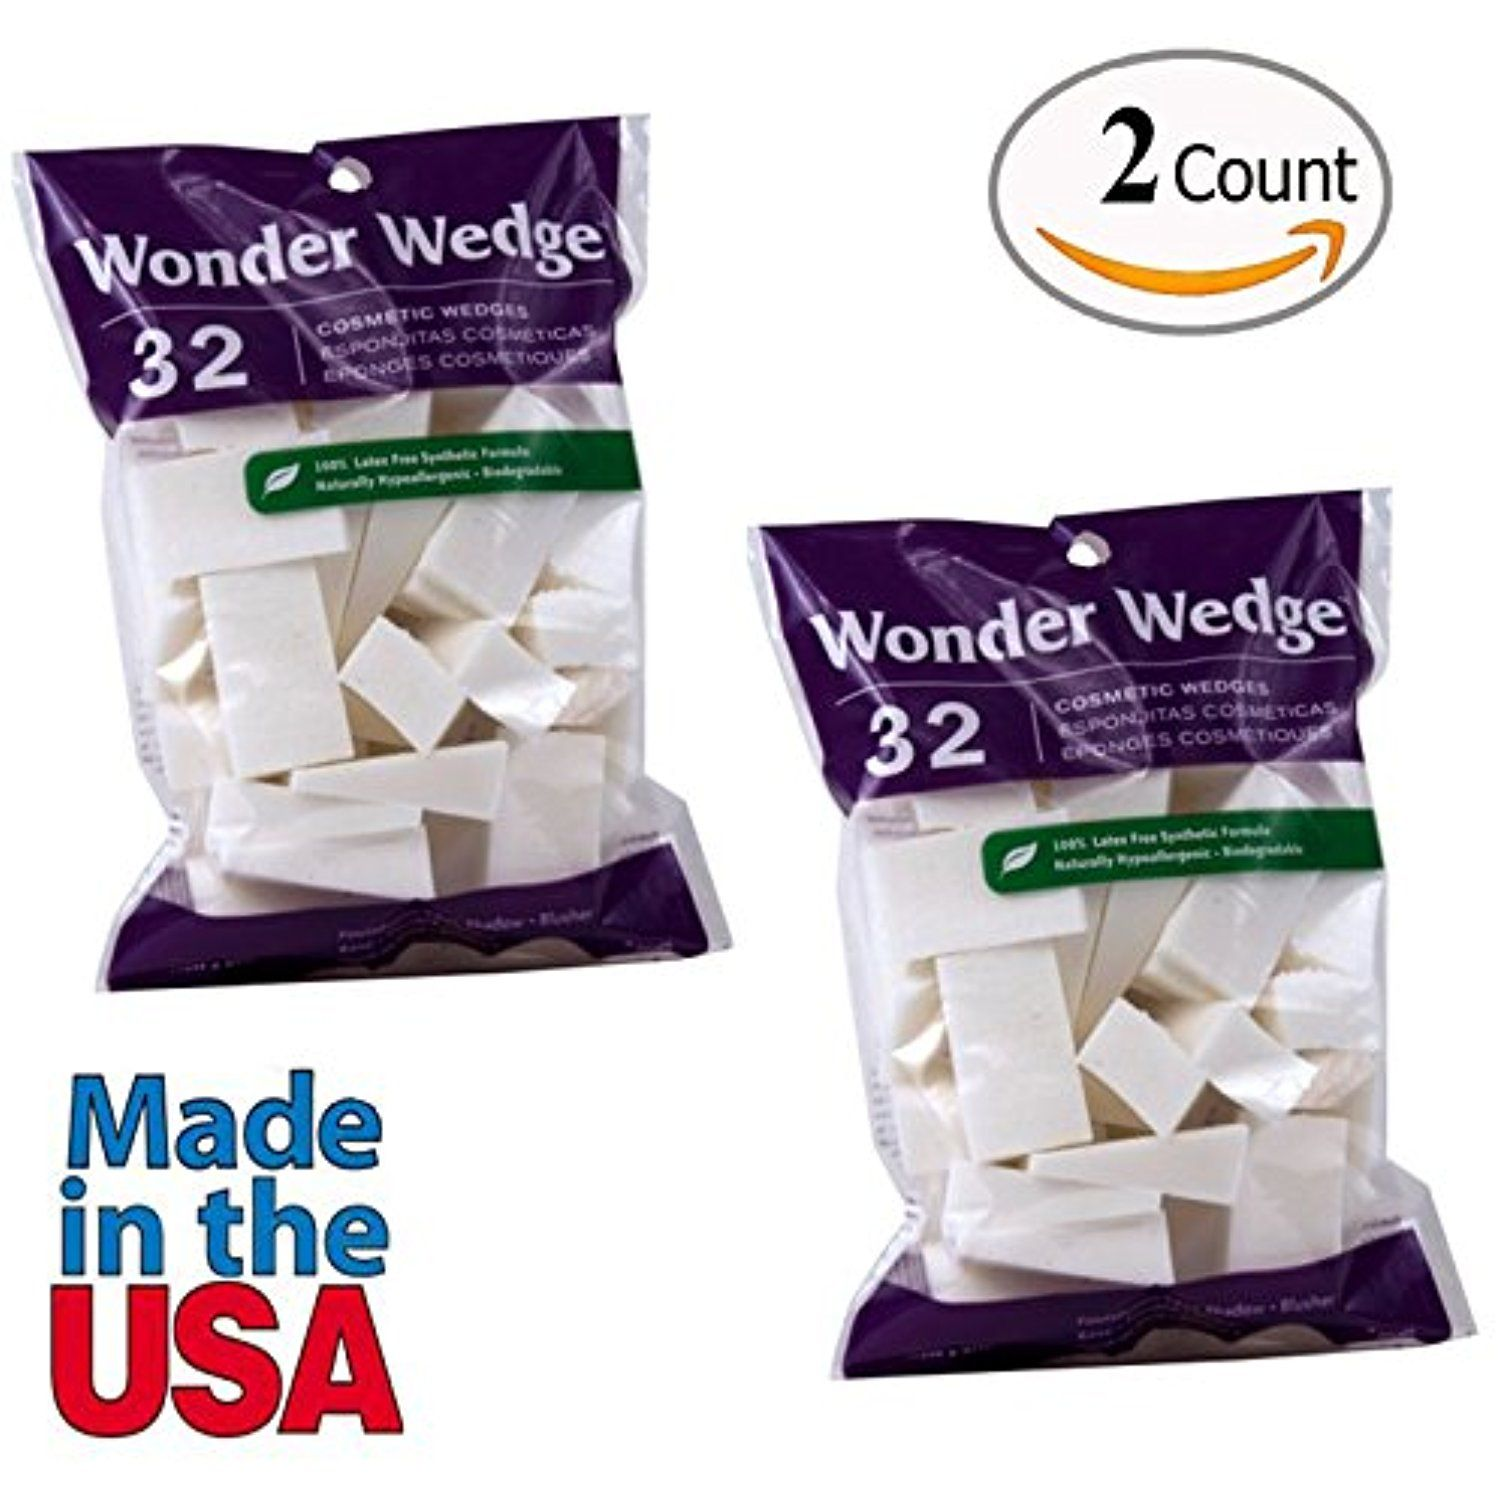 Cosmetic Wedges Made in USA Foam Makeup Sponges Puffs from